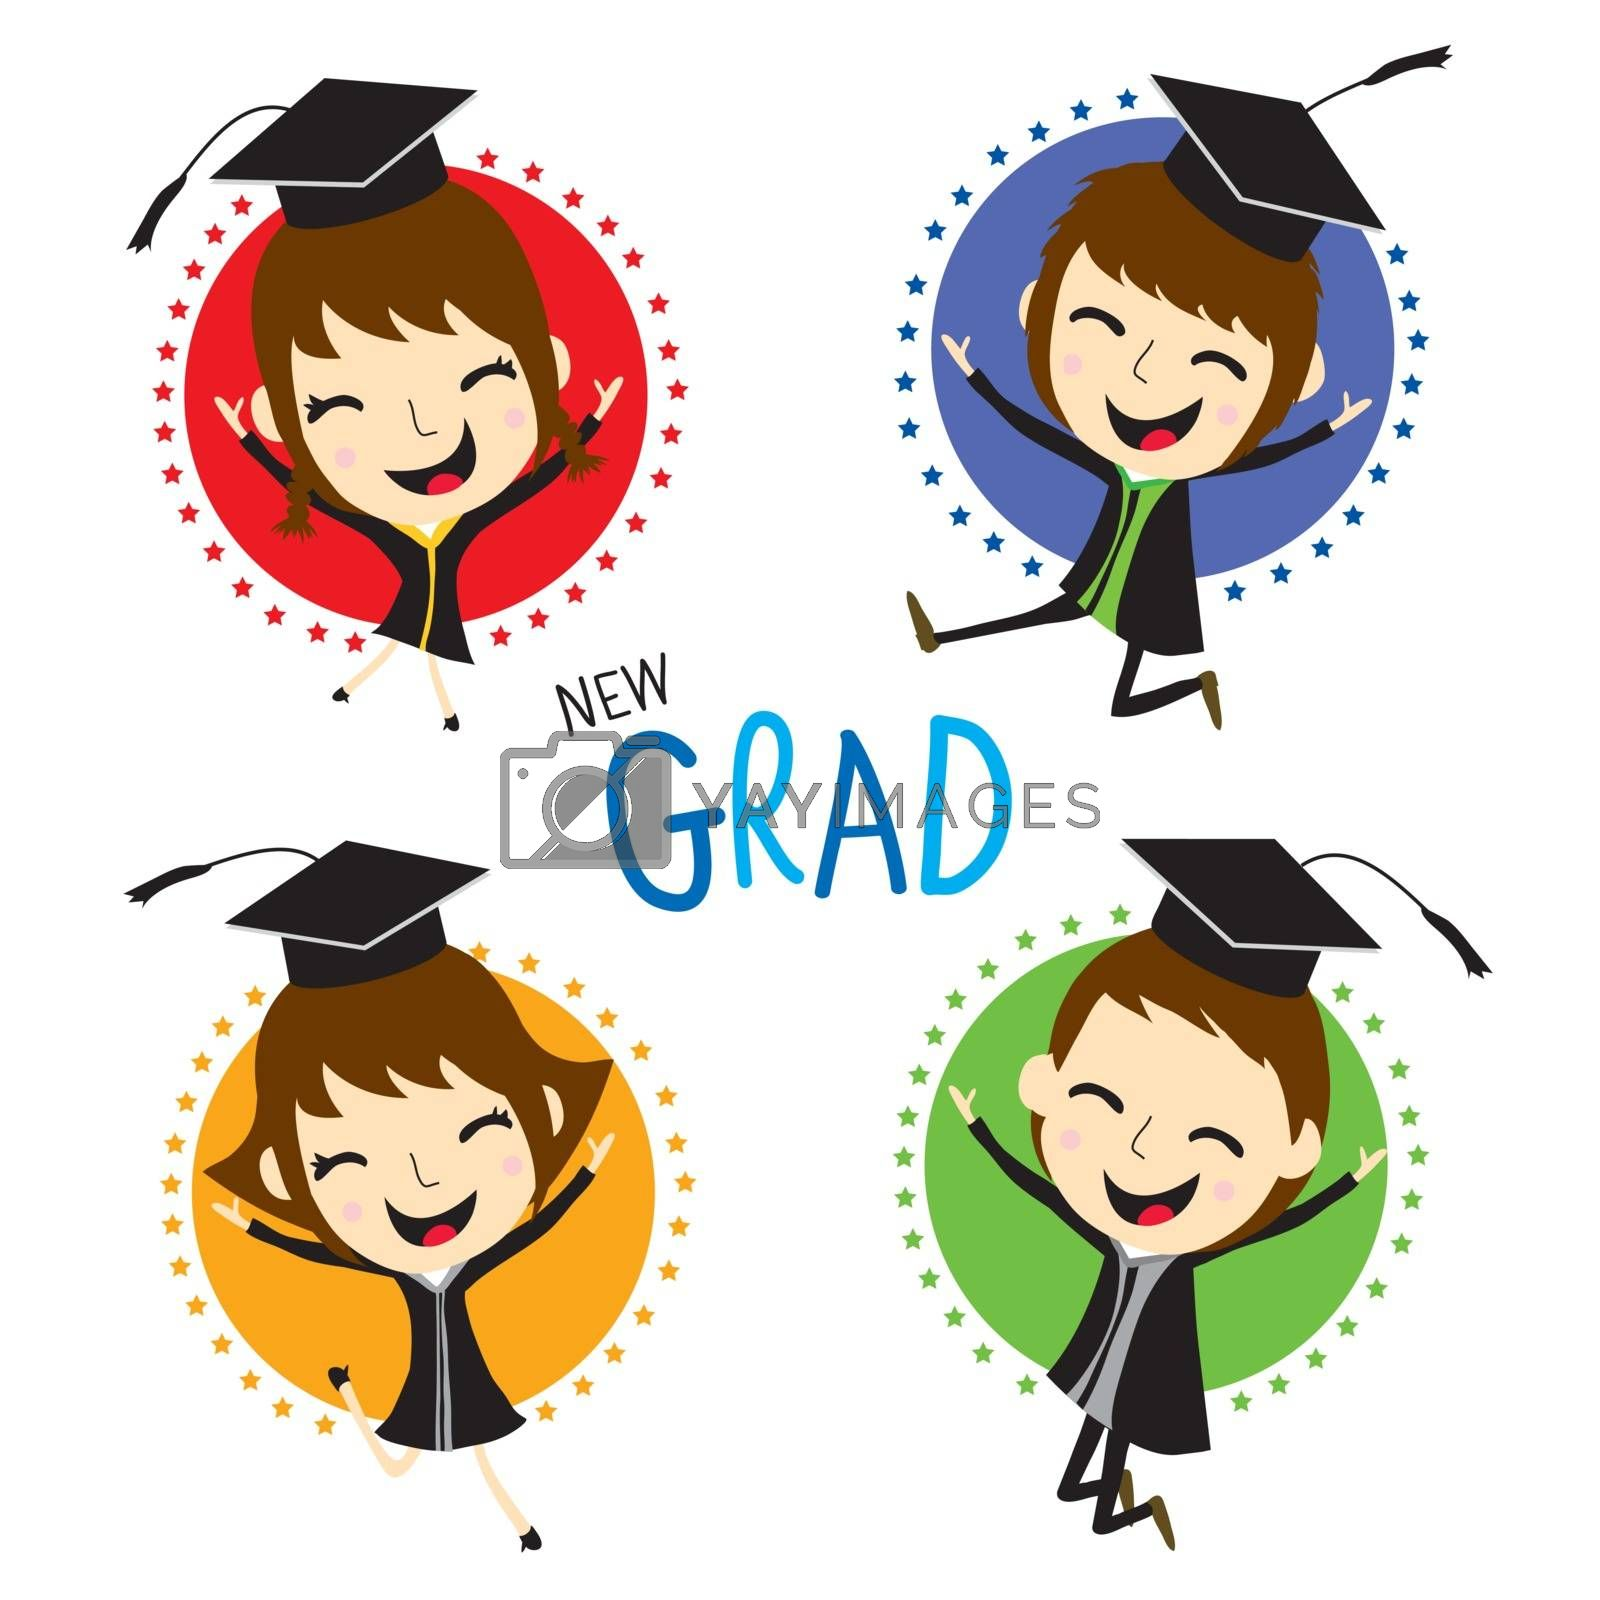 Royalty free image of Congratulation with New graduate kid in Graduation Day cartoon Vector by Ienjoyeverytime